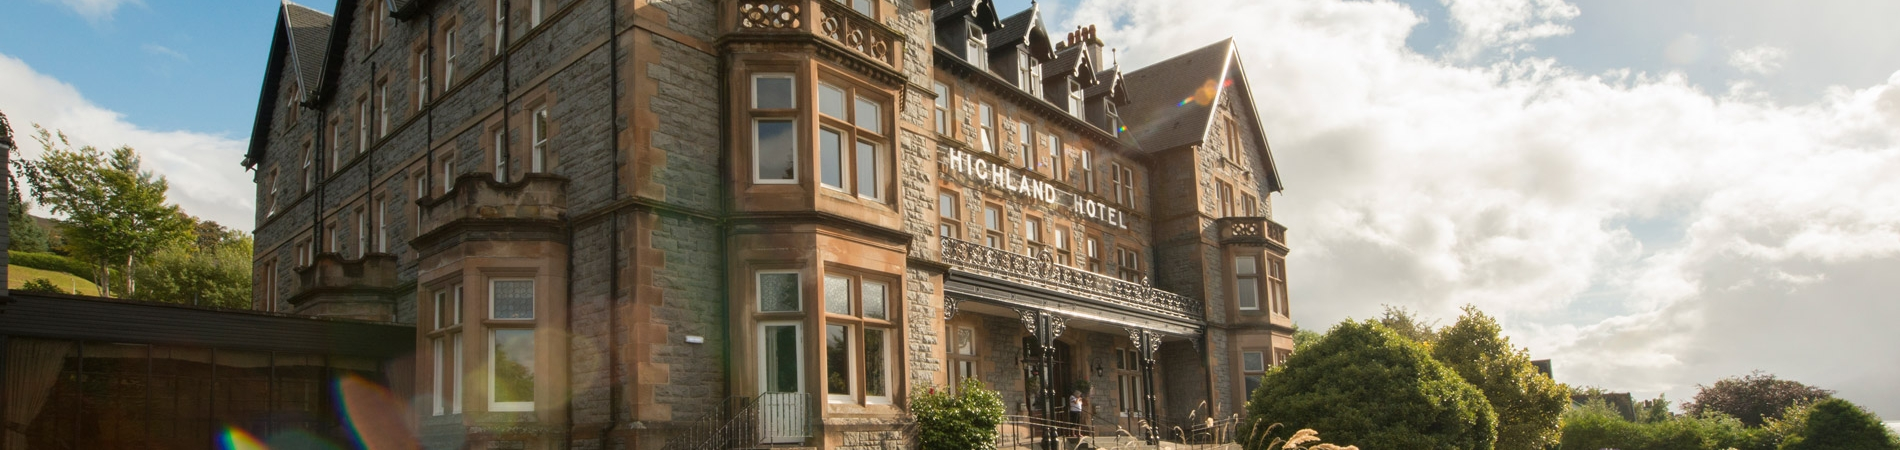 The Highland Hotel, enjoyed by customers of Lochs & Glens Coach Tours